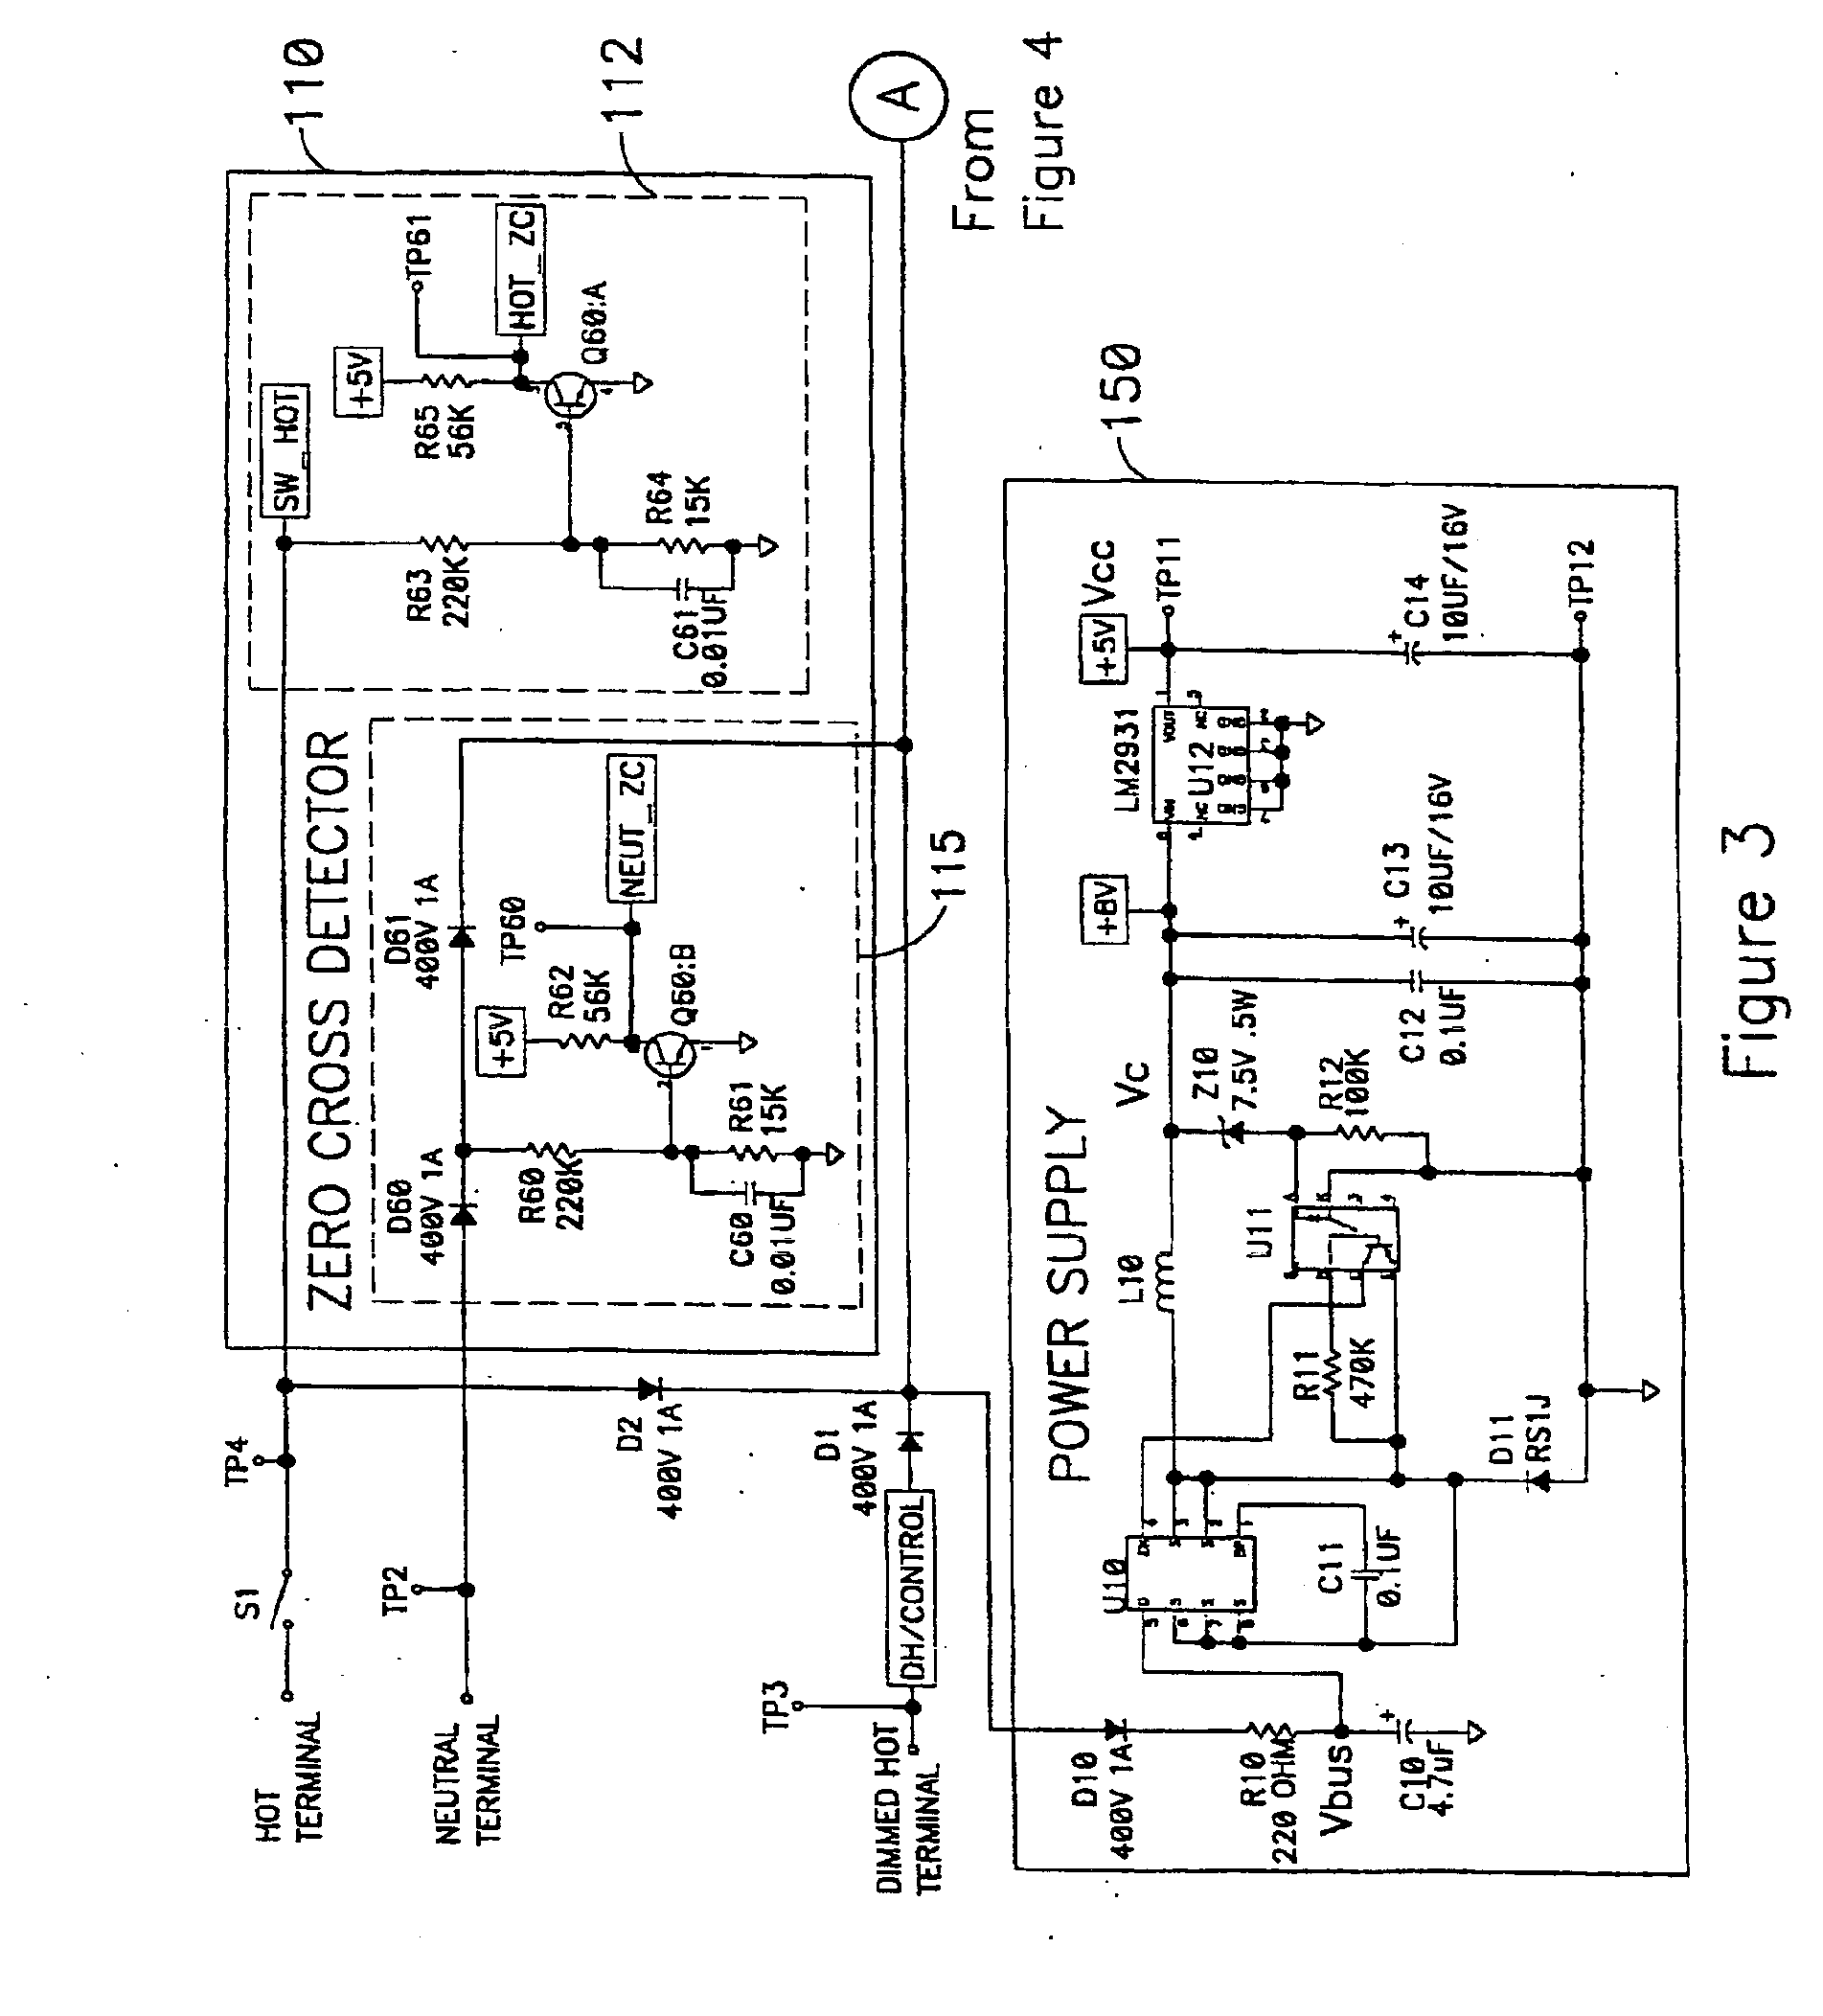 Patent Us20080094010 Electronic Control Systems And Methods D61 Wiring Diagram Drawing